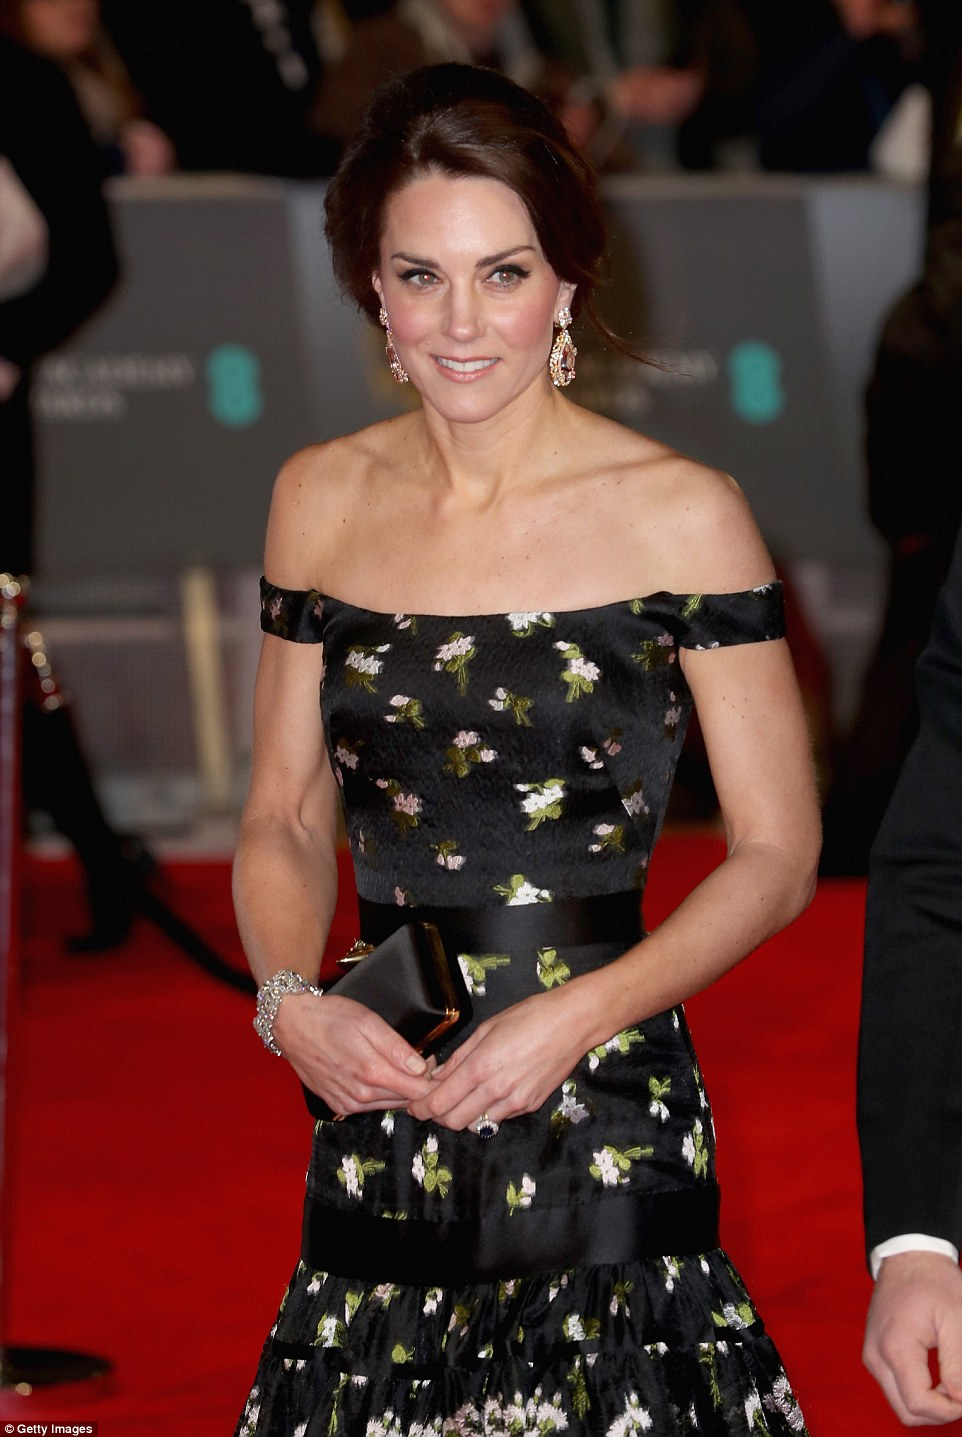 Kate Middleton – 2017 British Academy Film Awards in London